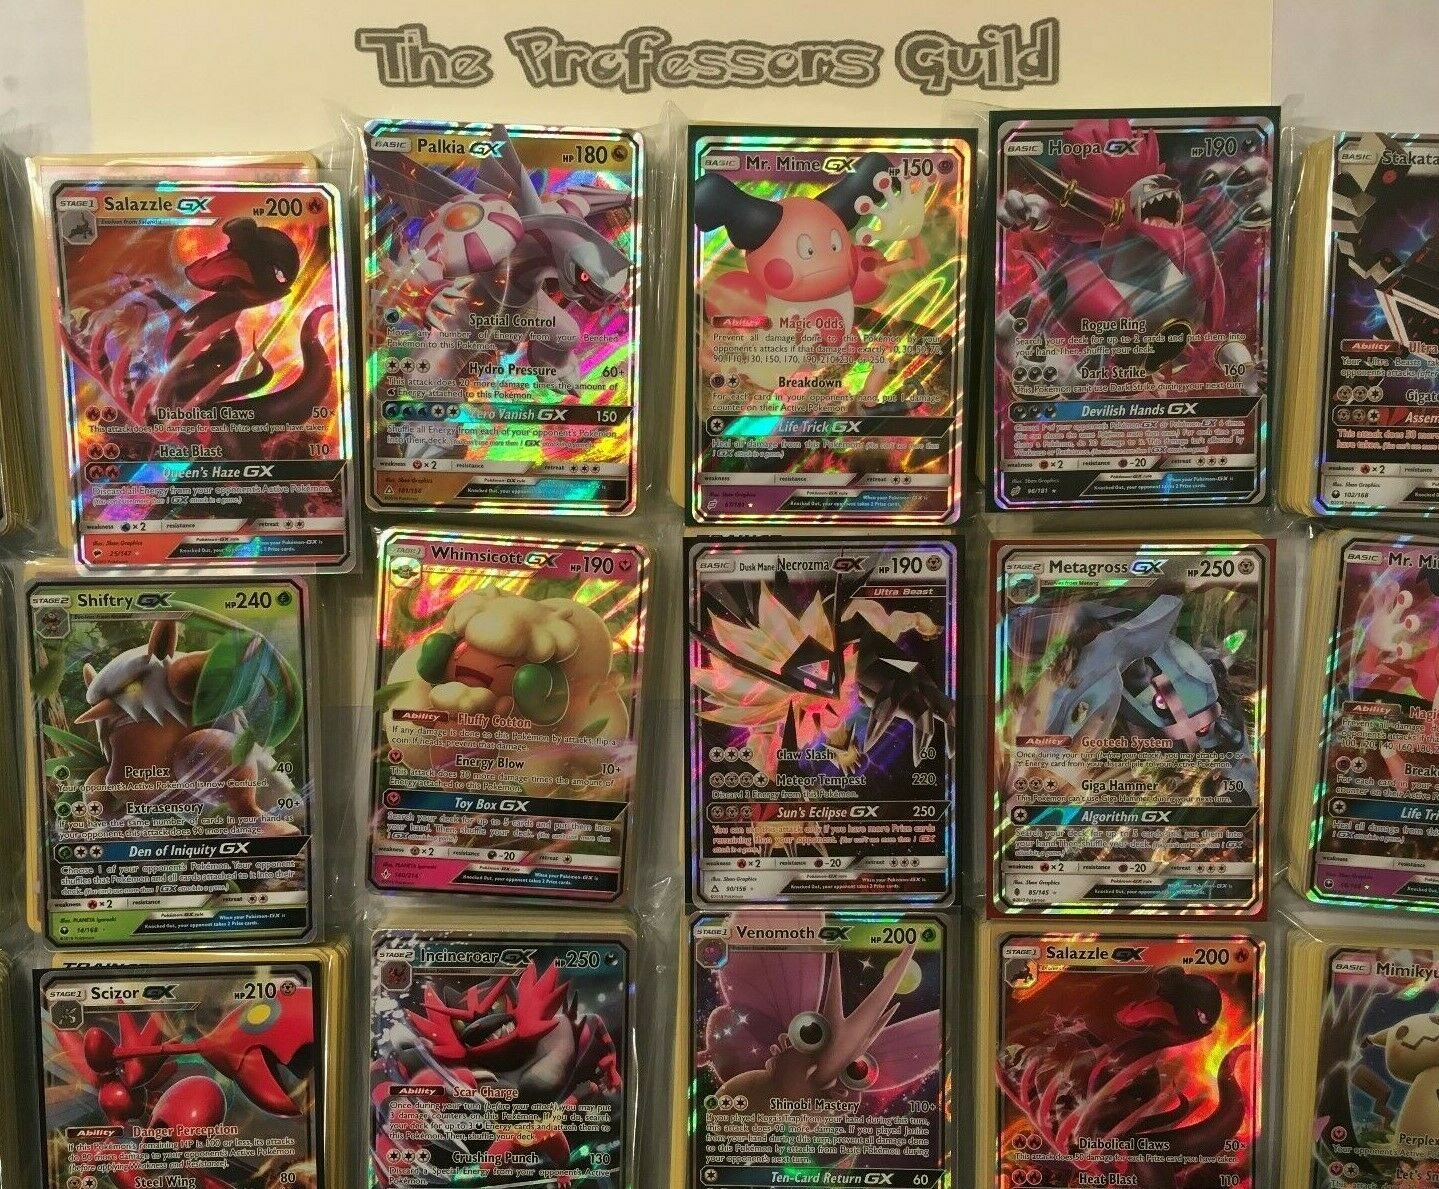 GUARANTEED POKÉMON EX//GX 10 AUTHENTIC CARDS//SALE • • NEW POKEMON CARD LOT